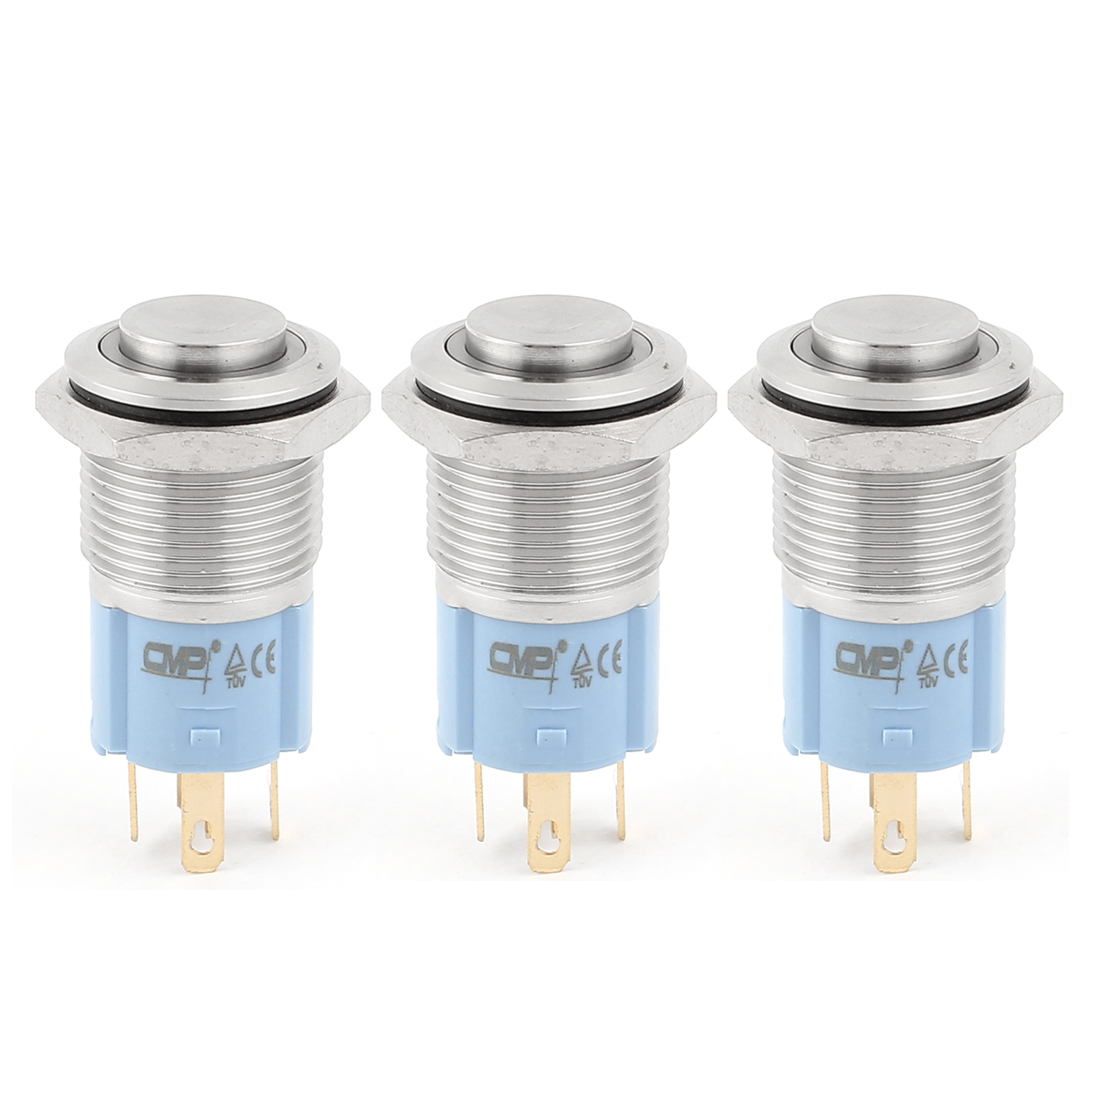 3Pcs DC 24V Red Green Blue LED Light 16mm Mounted Thread 5Pins SPDT NO/NC High Head Momentary Push Button Switch